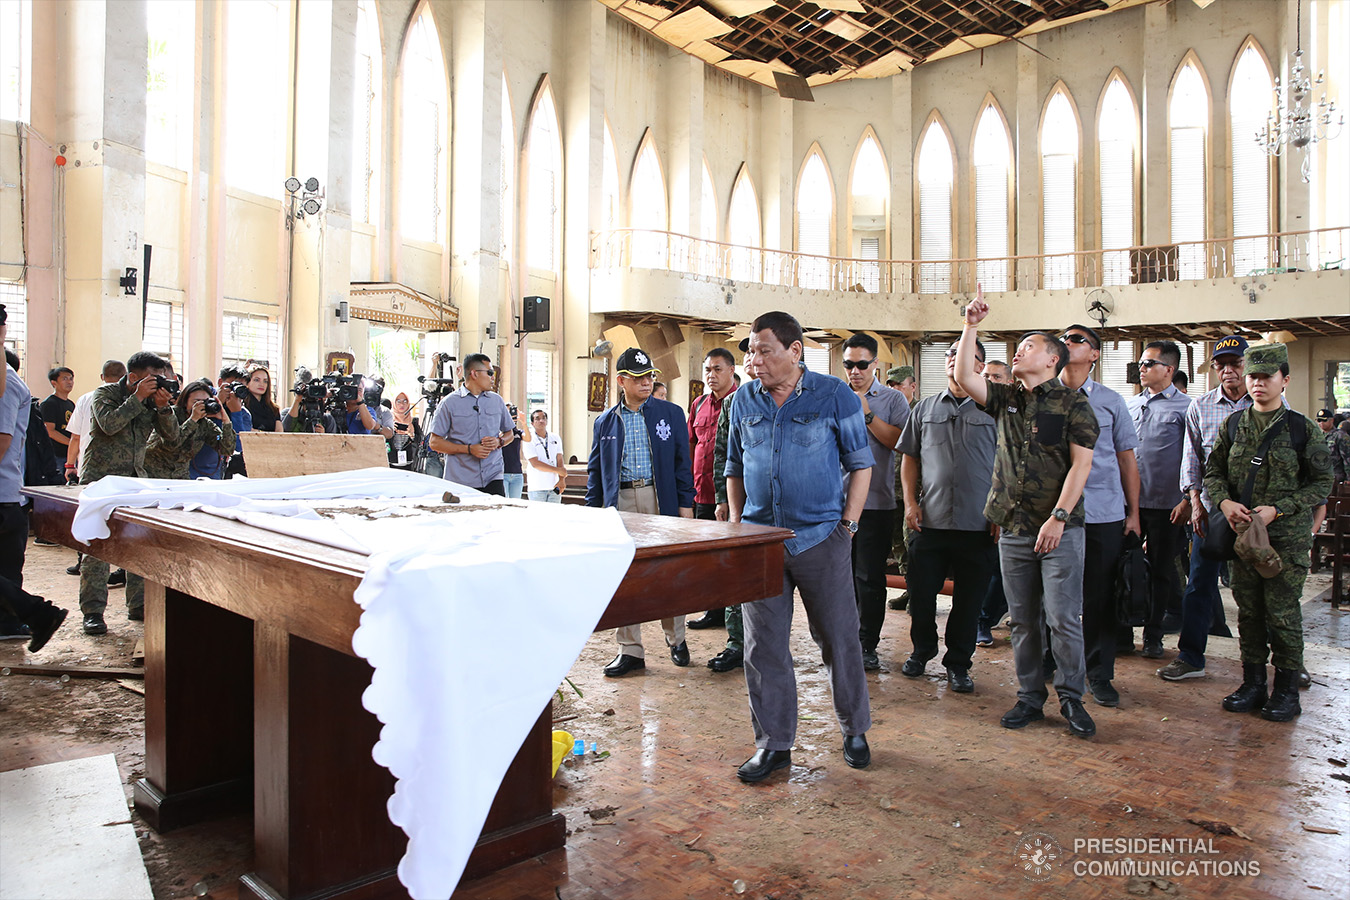 President Rodrigo Roa Duterte conducts an inspection inside the Cathedral of Our Lady of Mount Carmel in Jolo, Sulu on January 28, 2019 where two explosions occurred inside and outside the church last January 27. ALBERT ALCAIN/PRESIDENTIAL PHOTO